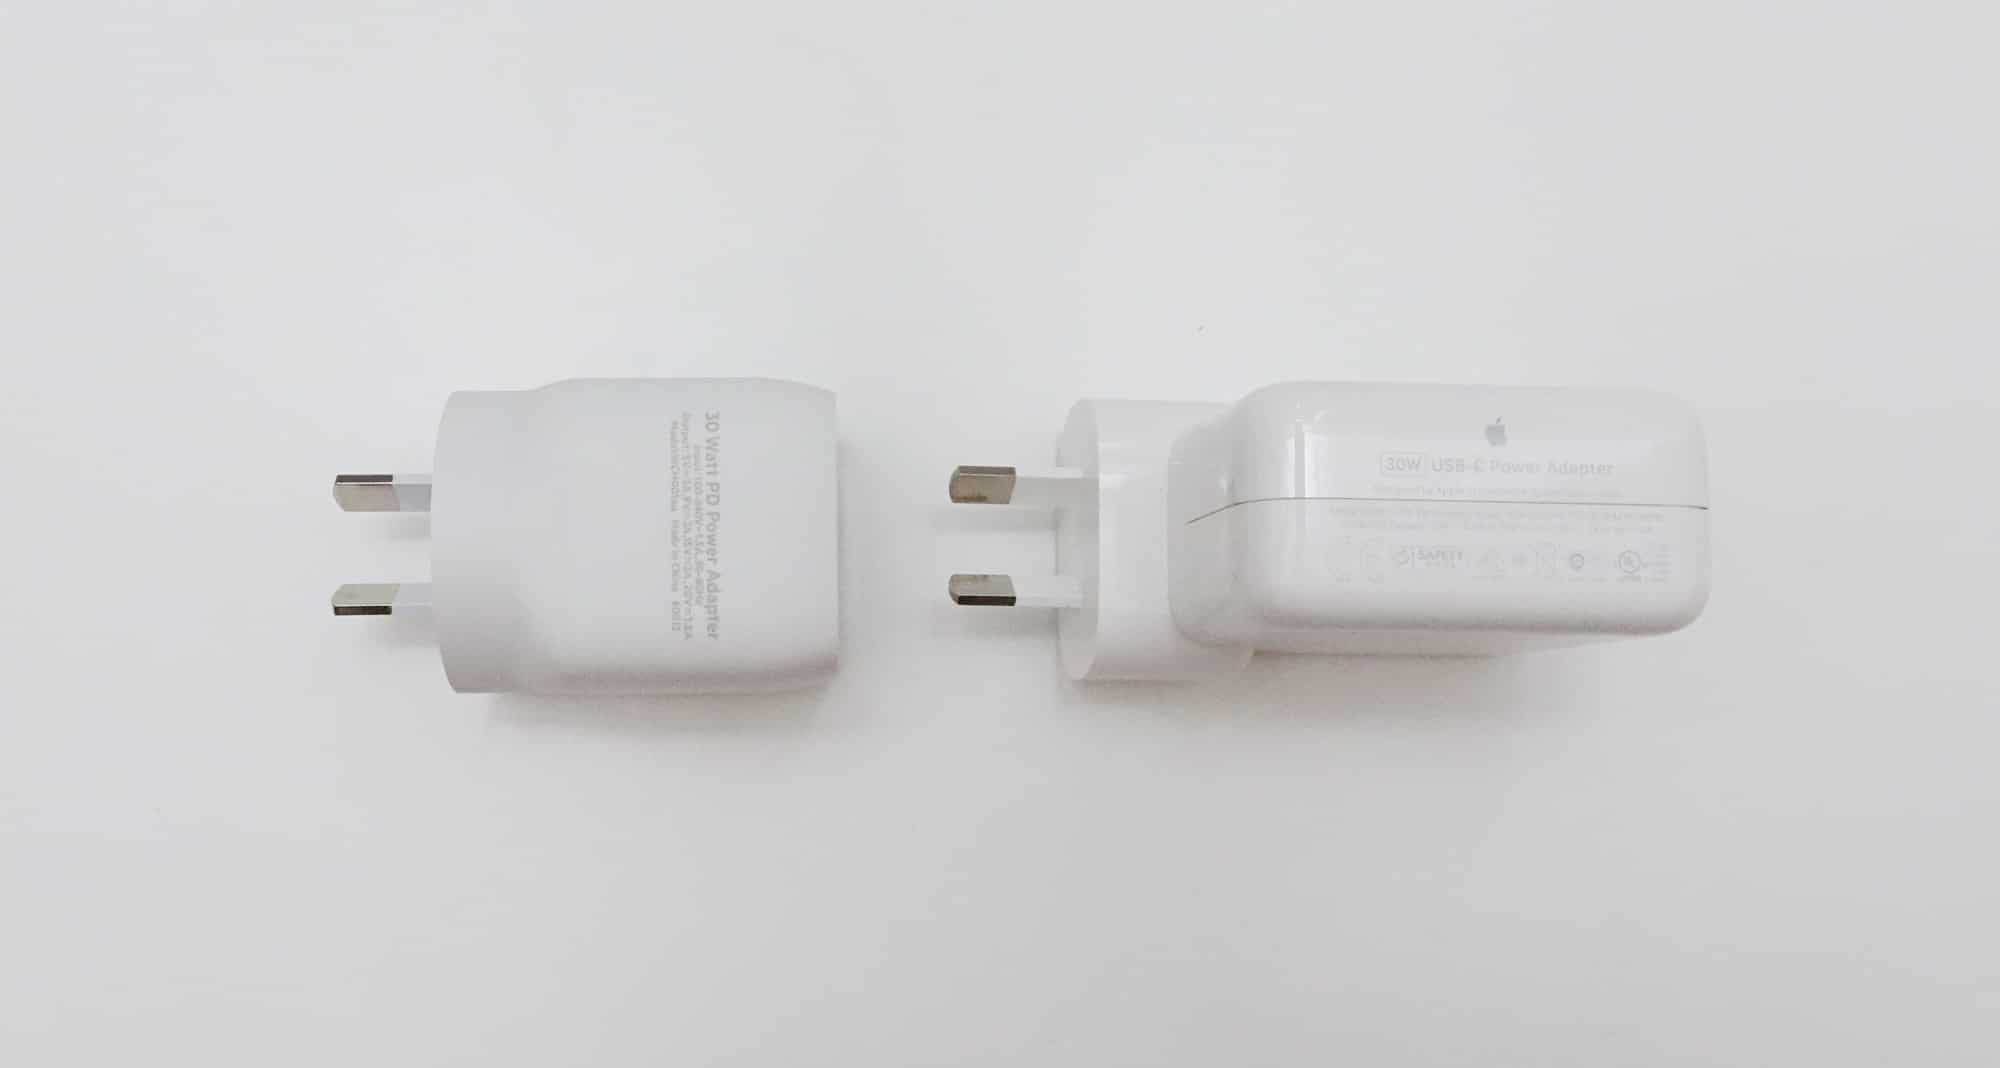 Belkin 30W GaN Boost charge pack (left) vs Apple 30W MacBook Air charge pack (right)